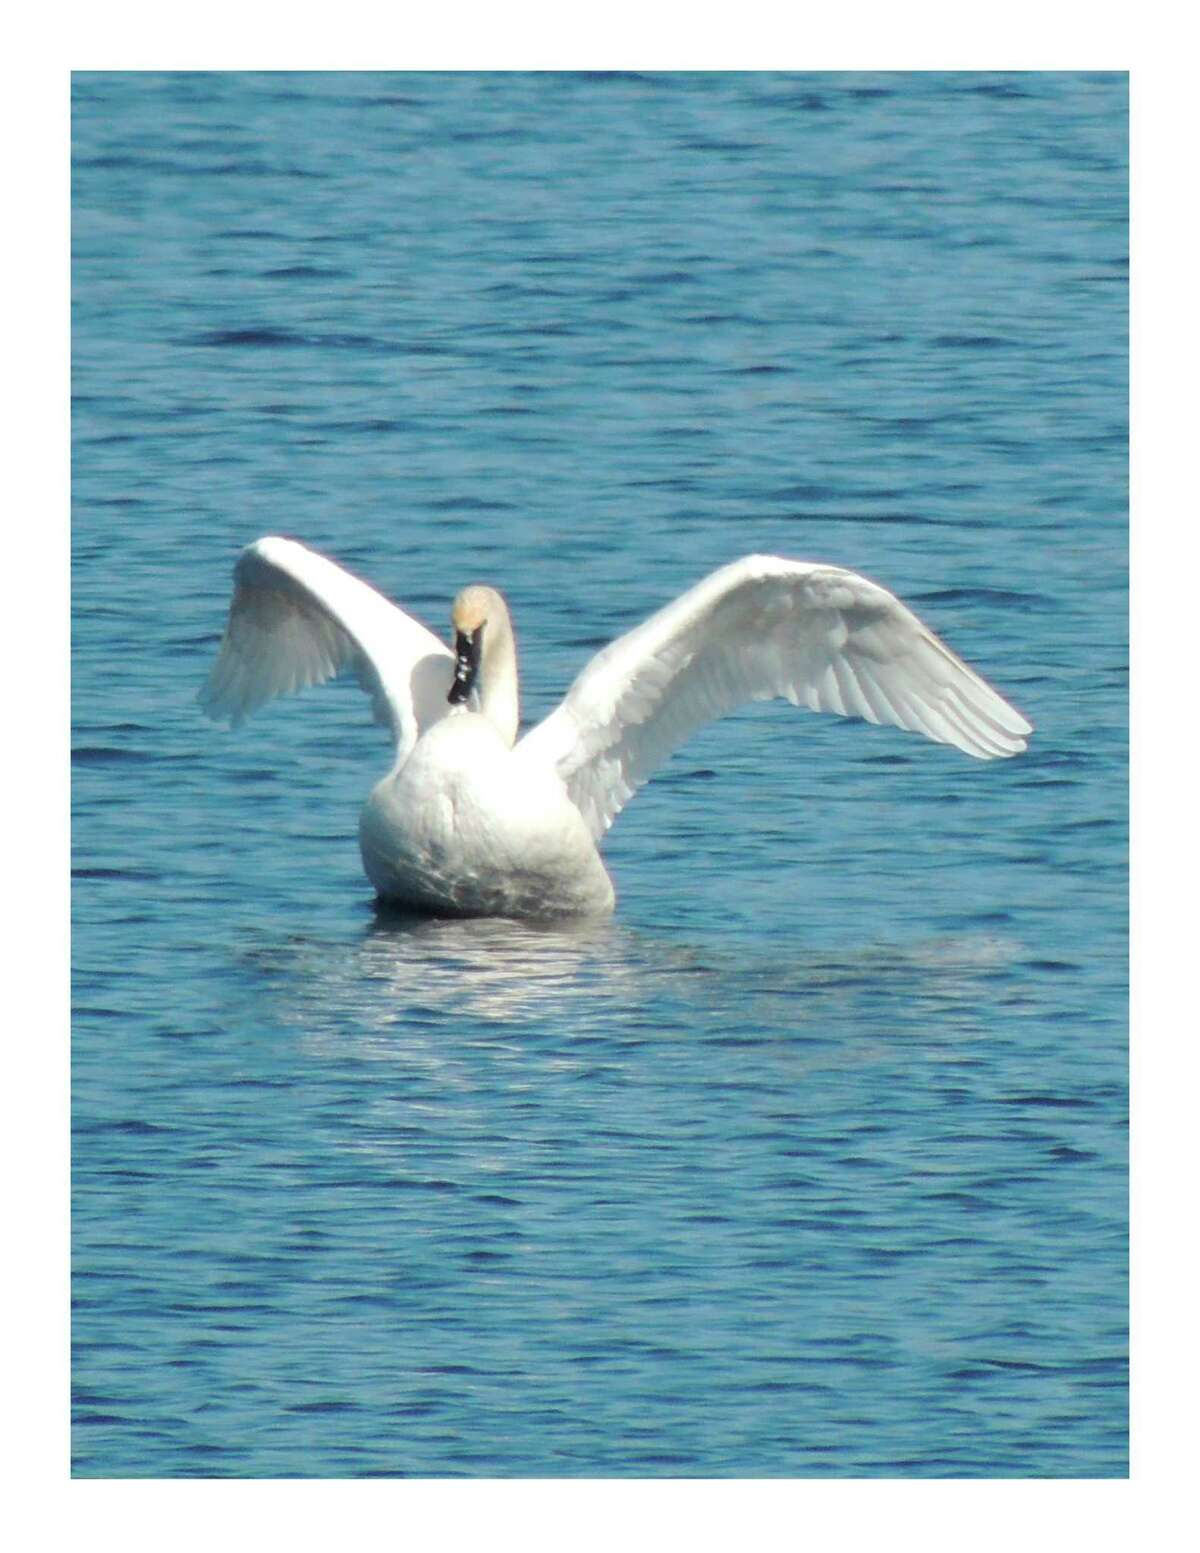 Trumpeter swans were completely gone from Michigan, but were re-introduced and are now doing fairly well. A pair stopped at Little Swamp Sanctuary in early spring this year on the migratory flight to the north. They may have a nesting location in northern Michigan.(Photo provided/Barb Rogers)